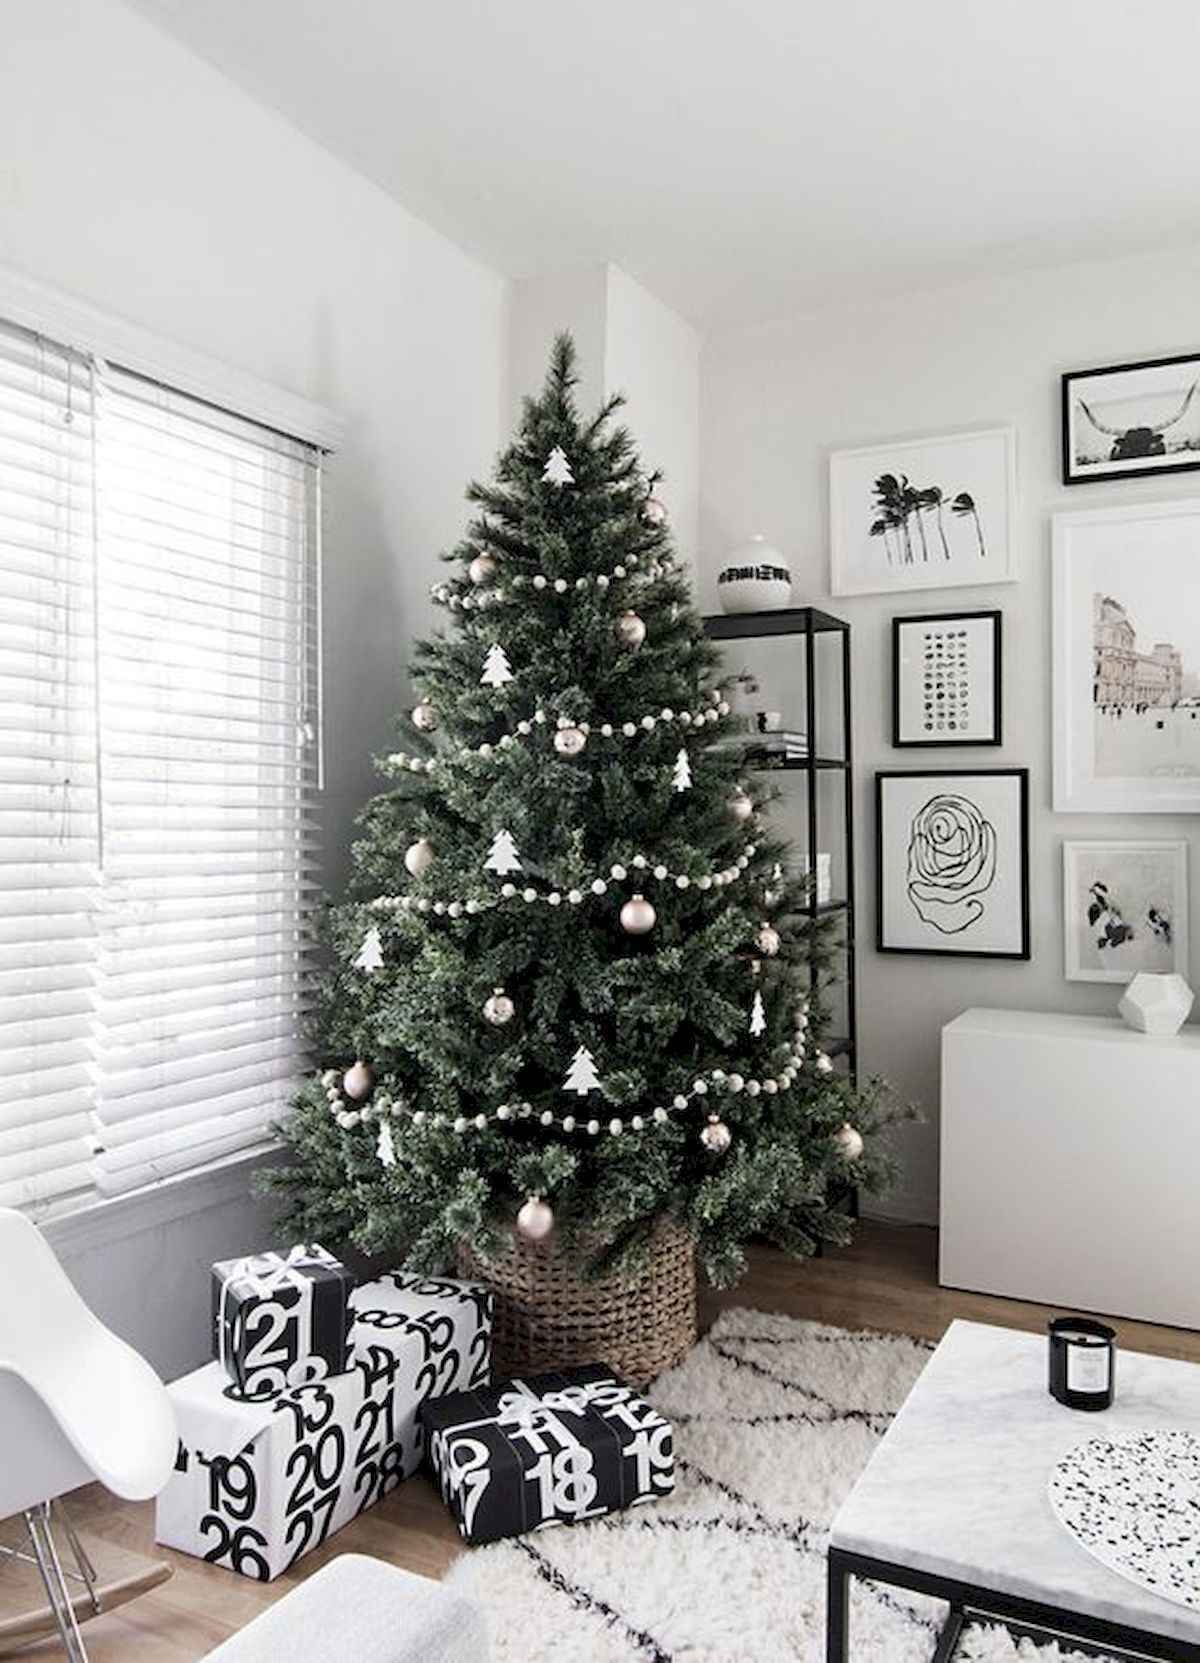 60 awesome christmas tree decorations ideas (55)